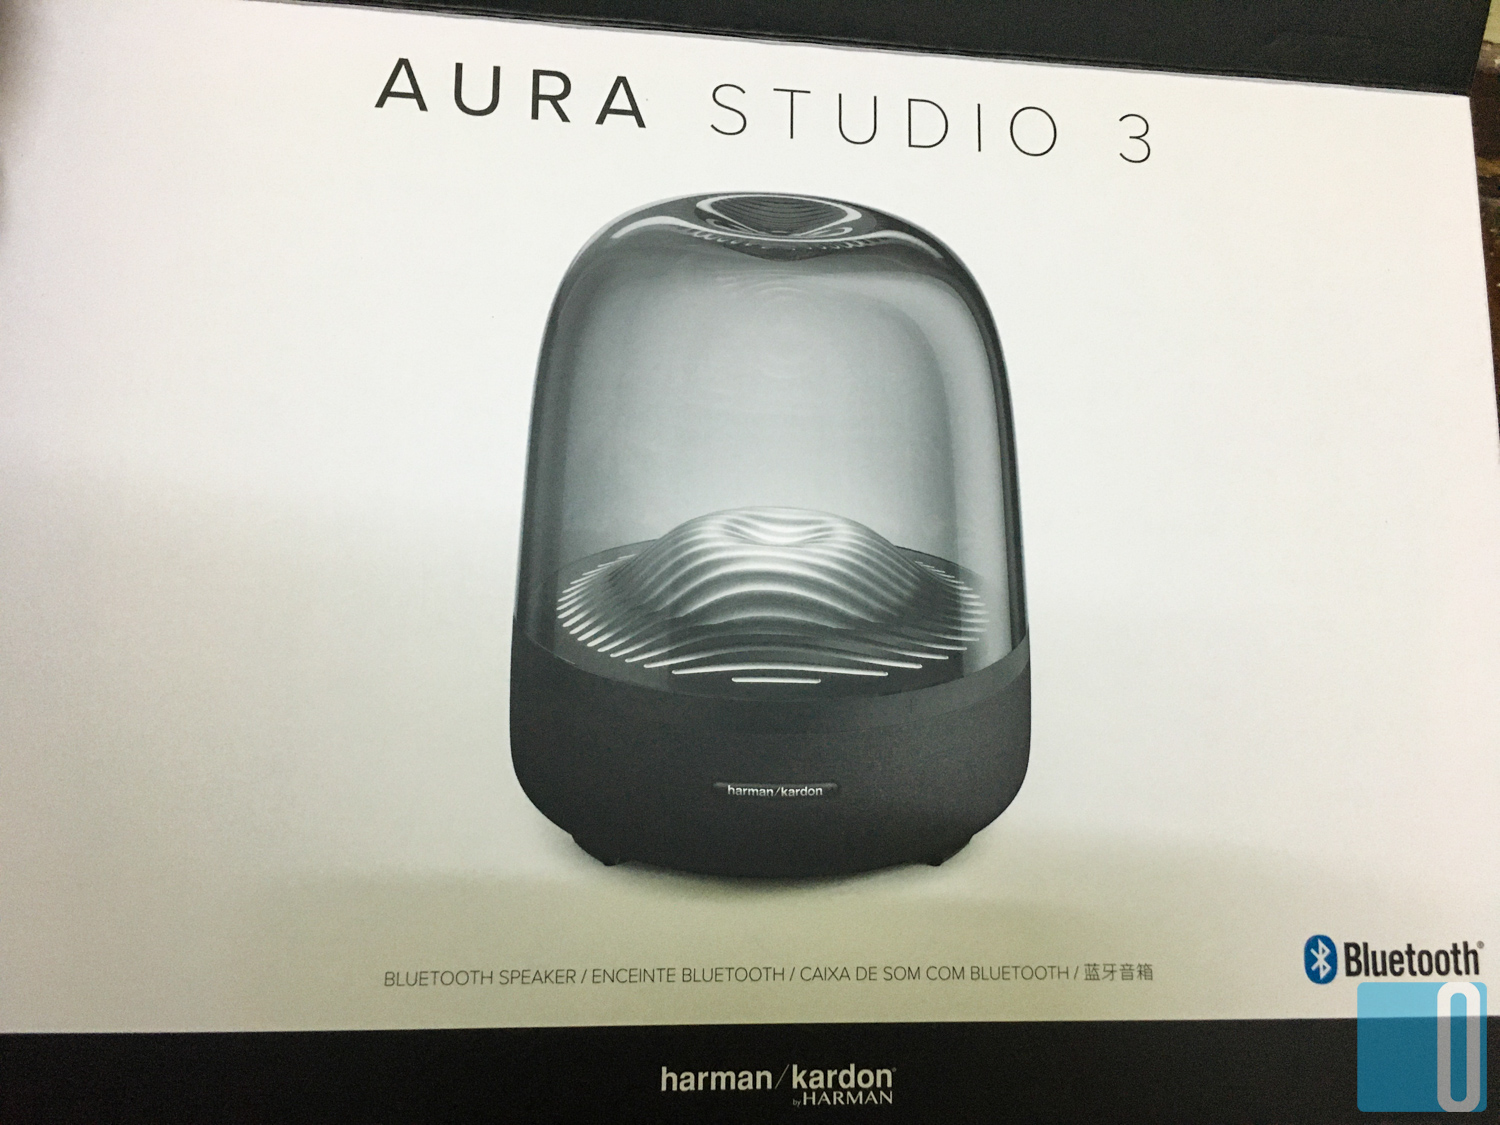 harman-kardon Aura Studio 3 Review